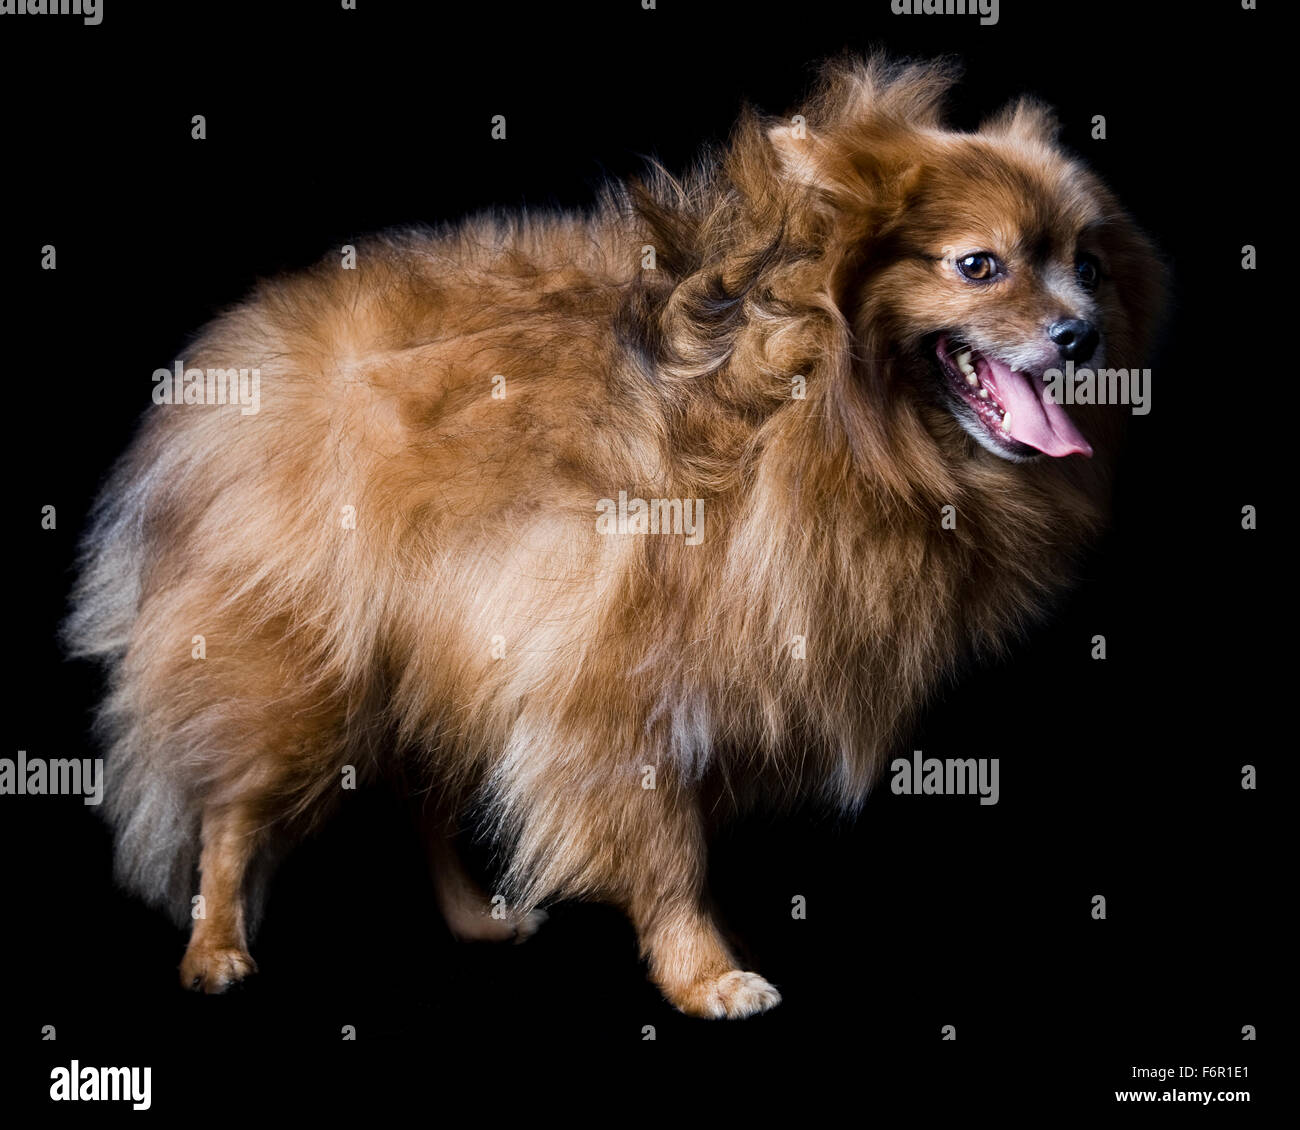 Wind blown smiling brown Pomeranian dog standing in studio on black background - Stock Image